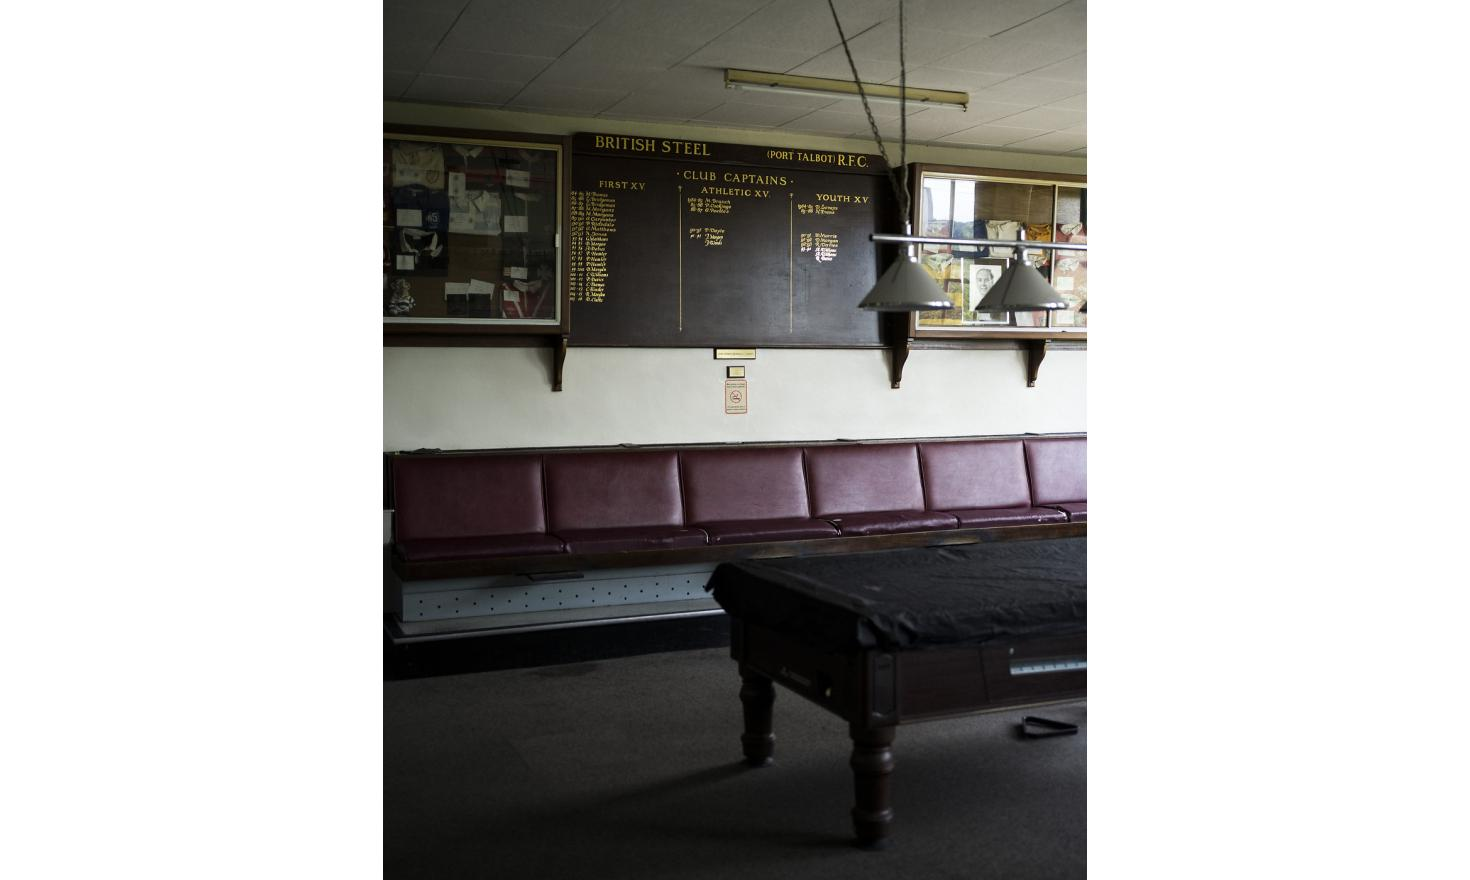 Inside the Tata Steel Social Club, in Port Talbot, South Wales. The steelworks originally belonged to British Steel and the name is still visible on the board behind the snooker tables.